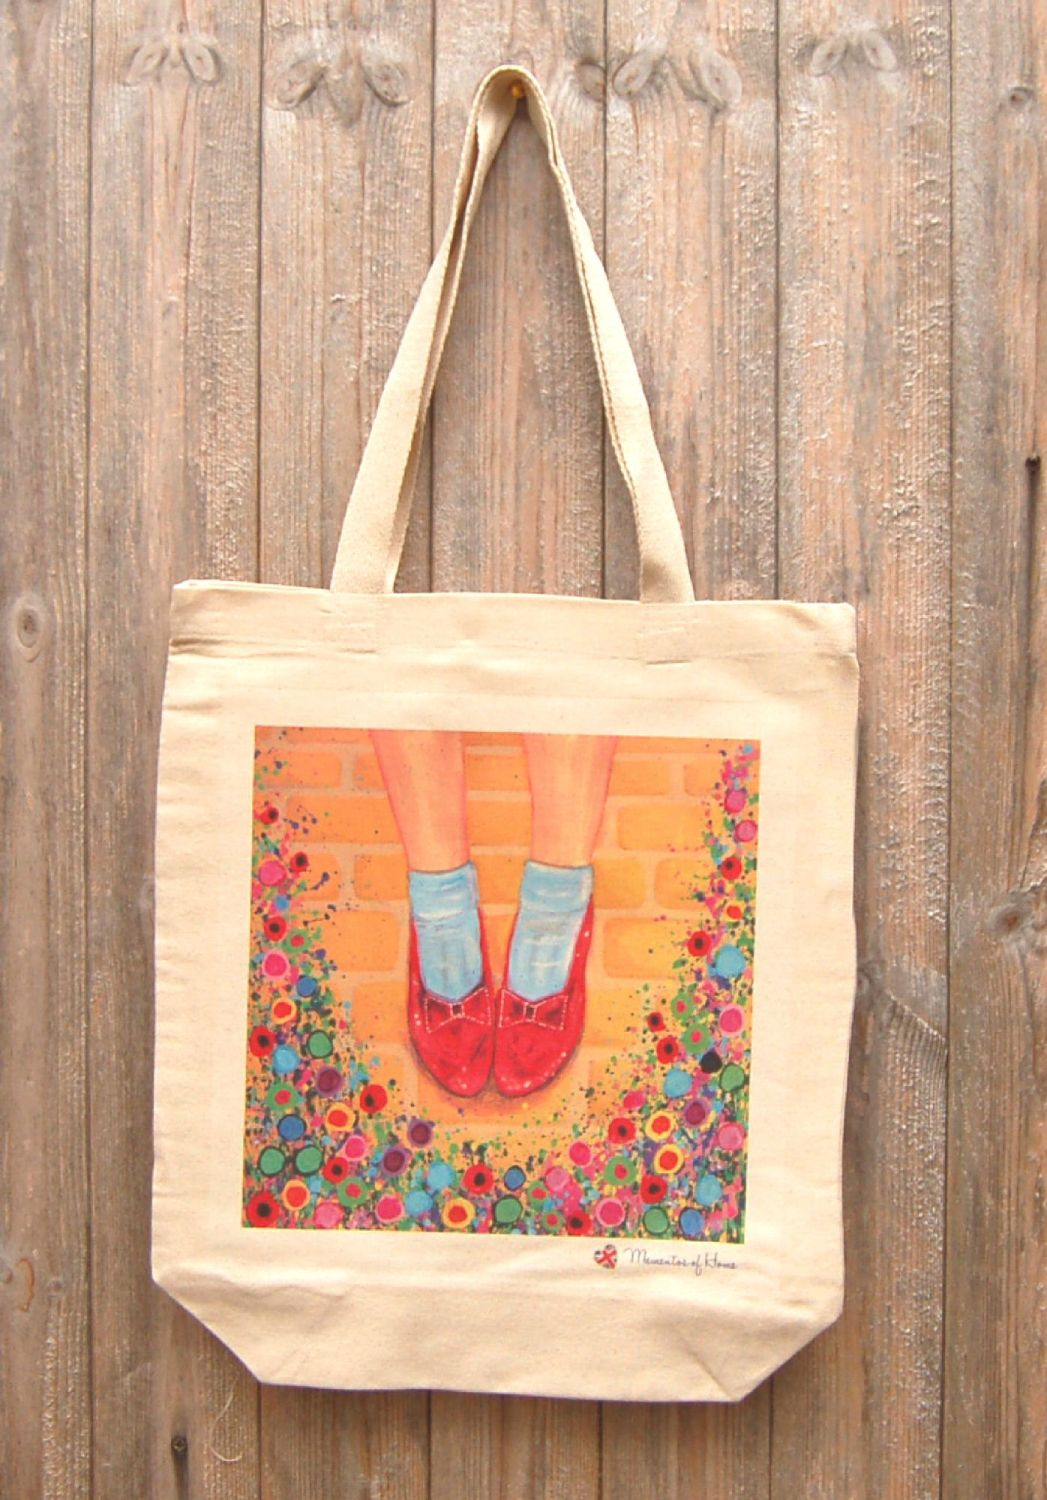 Jo Gough - Ruby Slippers with flowers Tote Bag